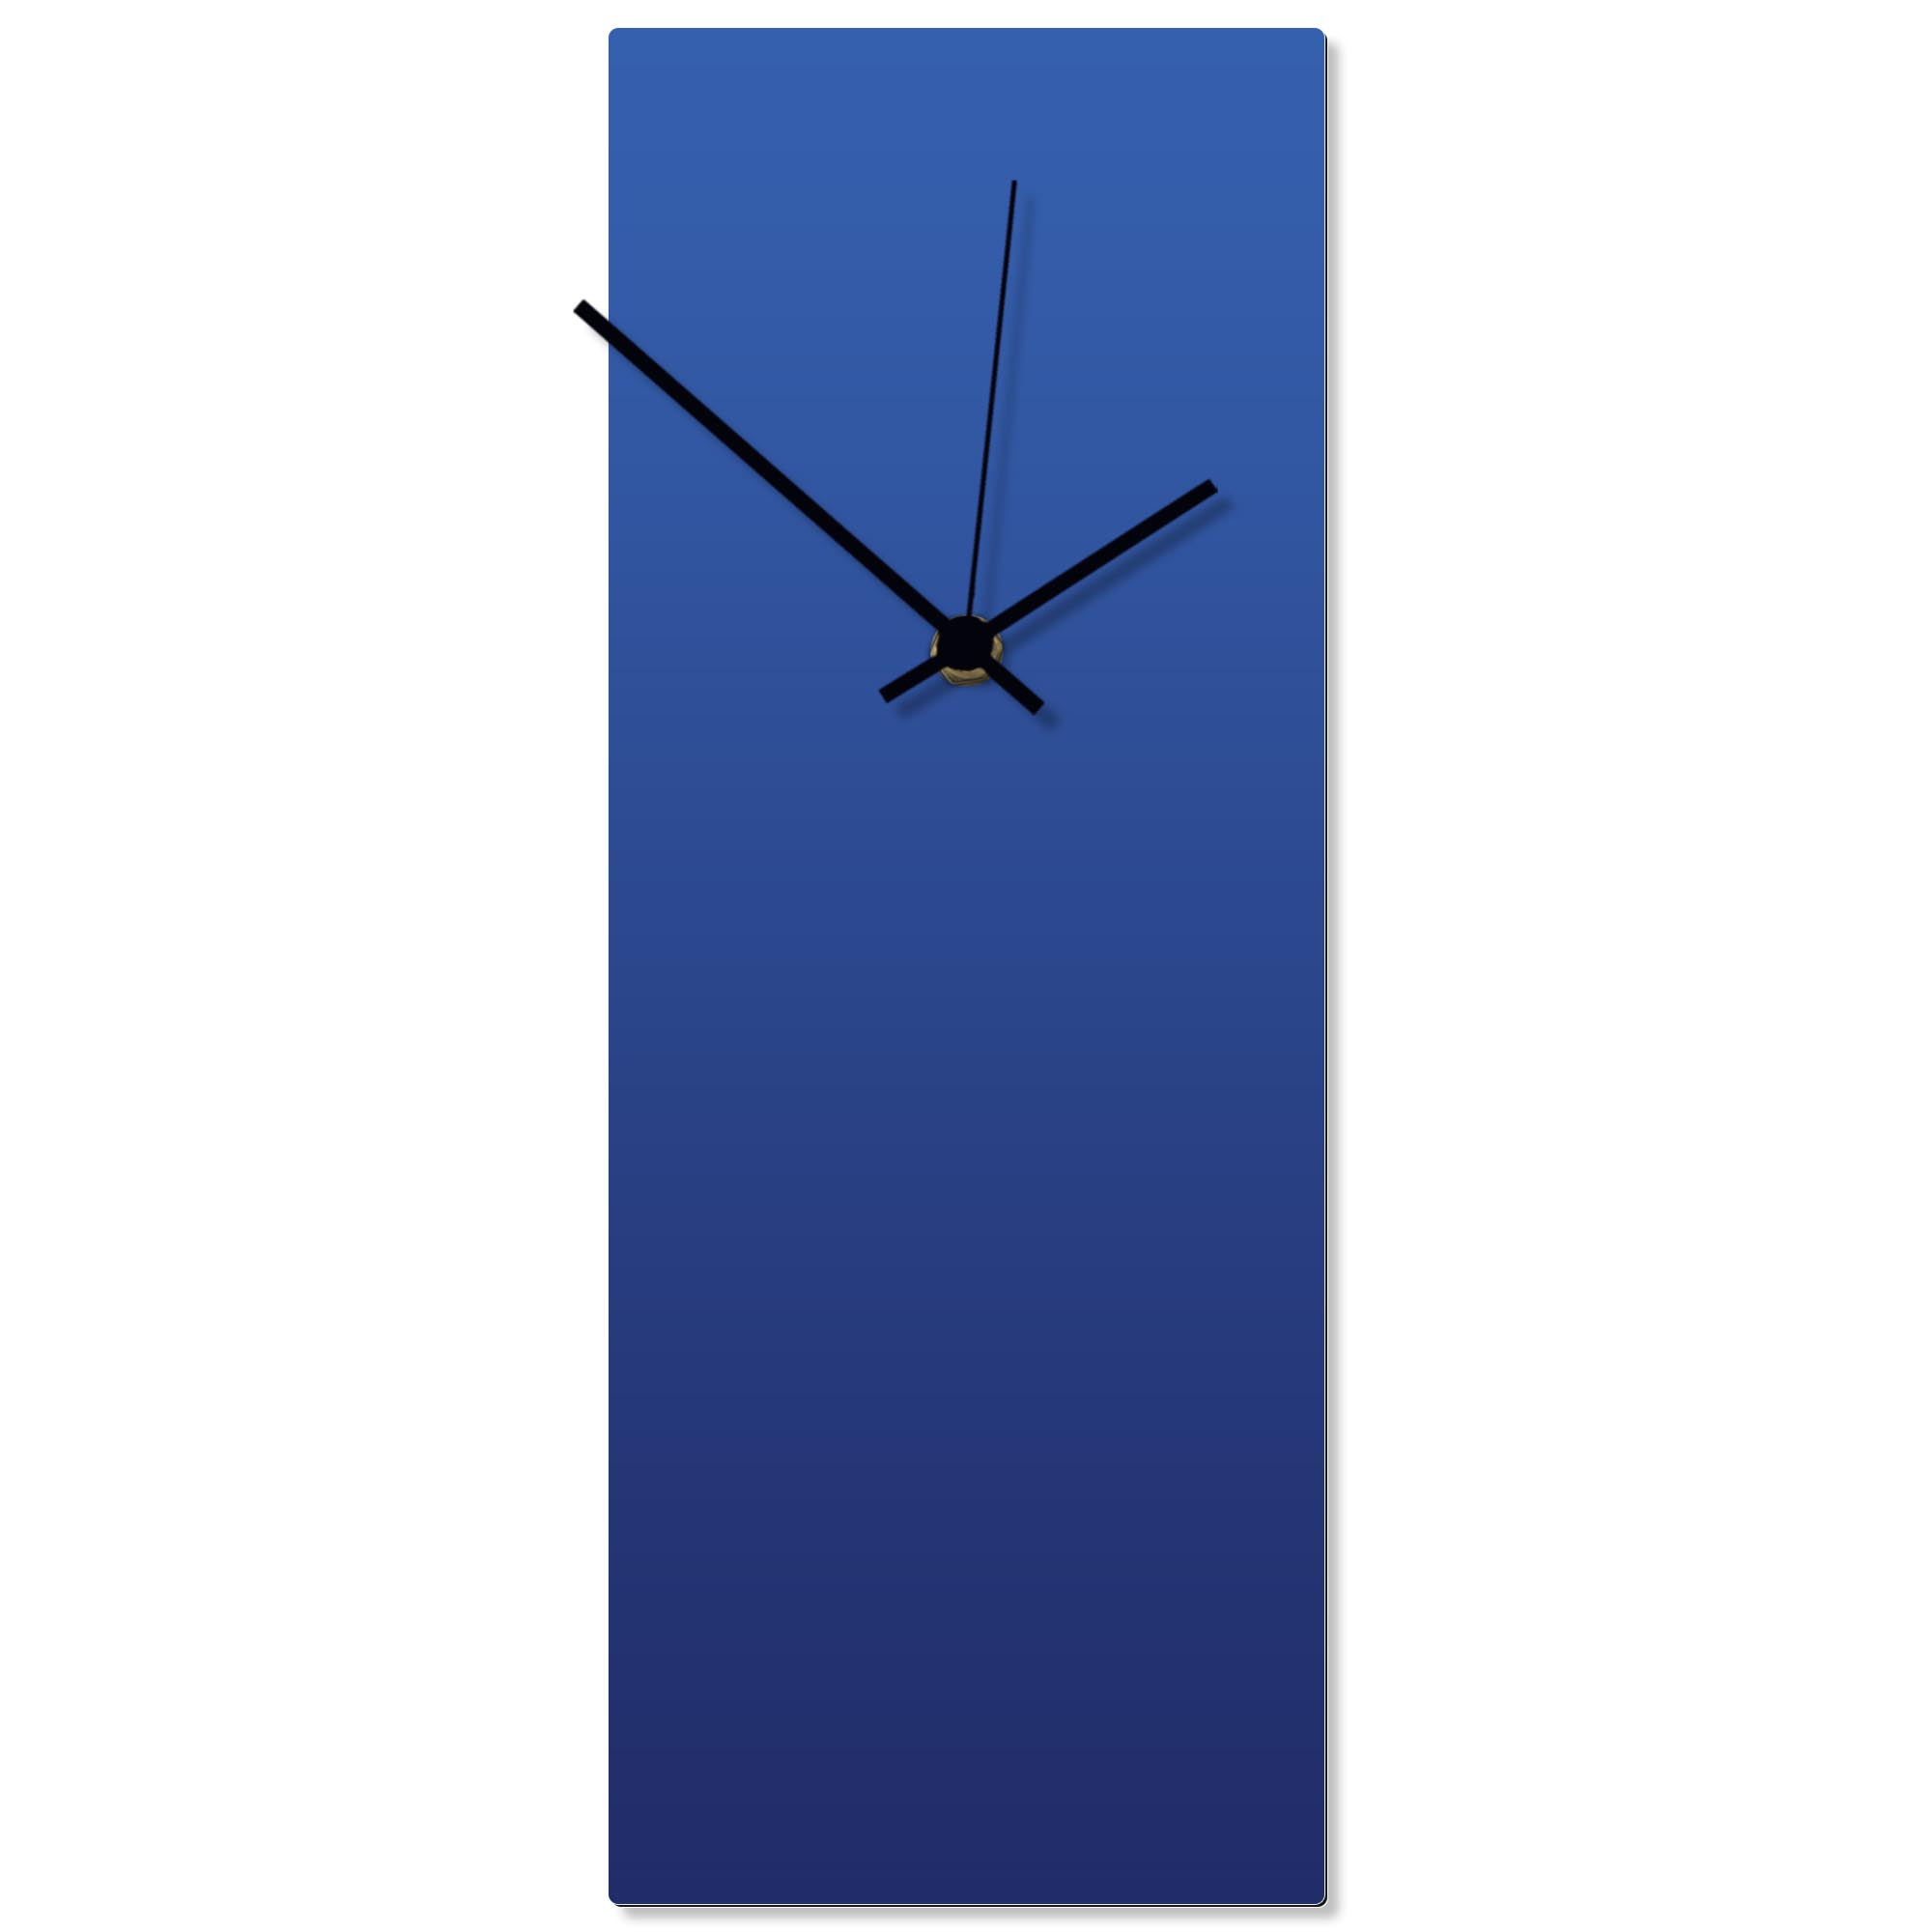 Blueout Black Clock 6x16in. Aluminum Polymetal